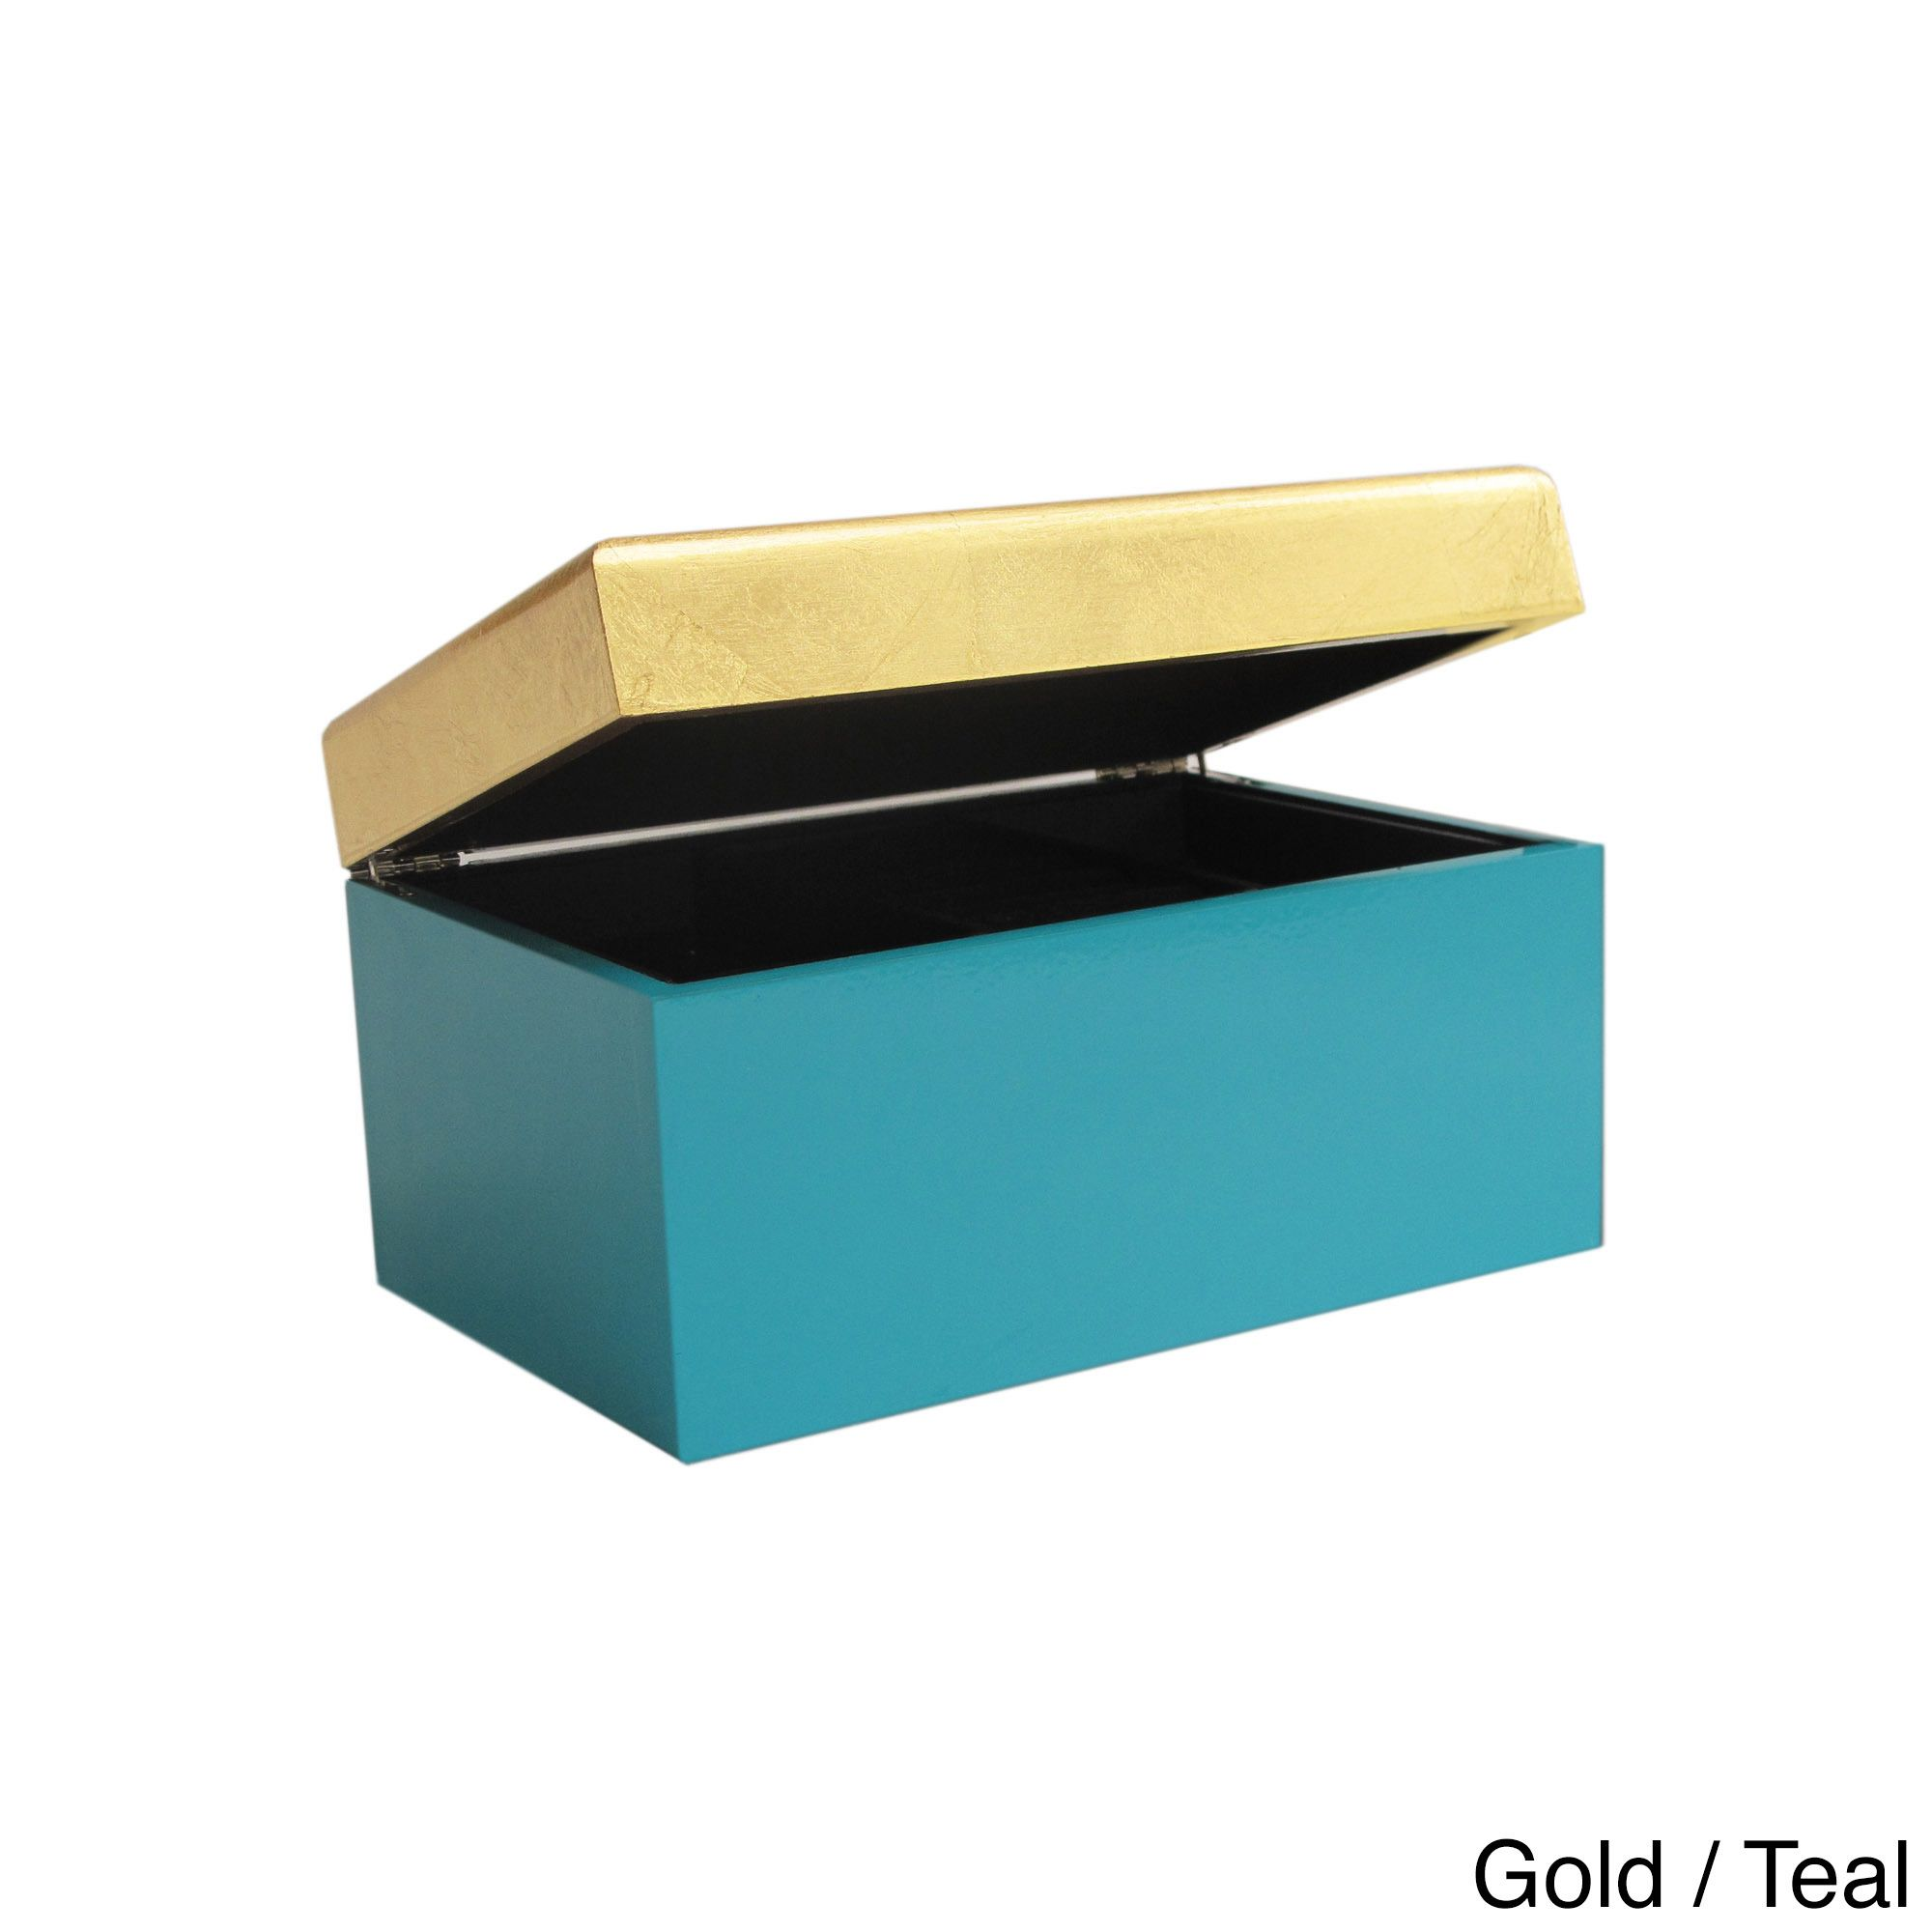 Allure by Jay Twotone Lidded Jewelry Box 2 Color Jewelry Box